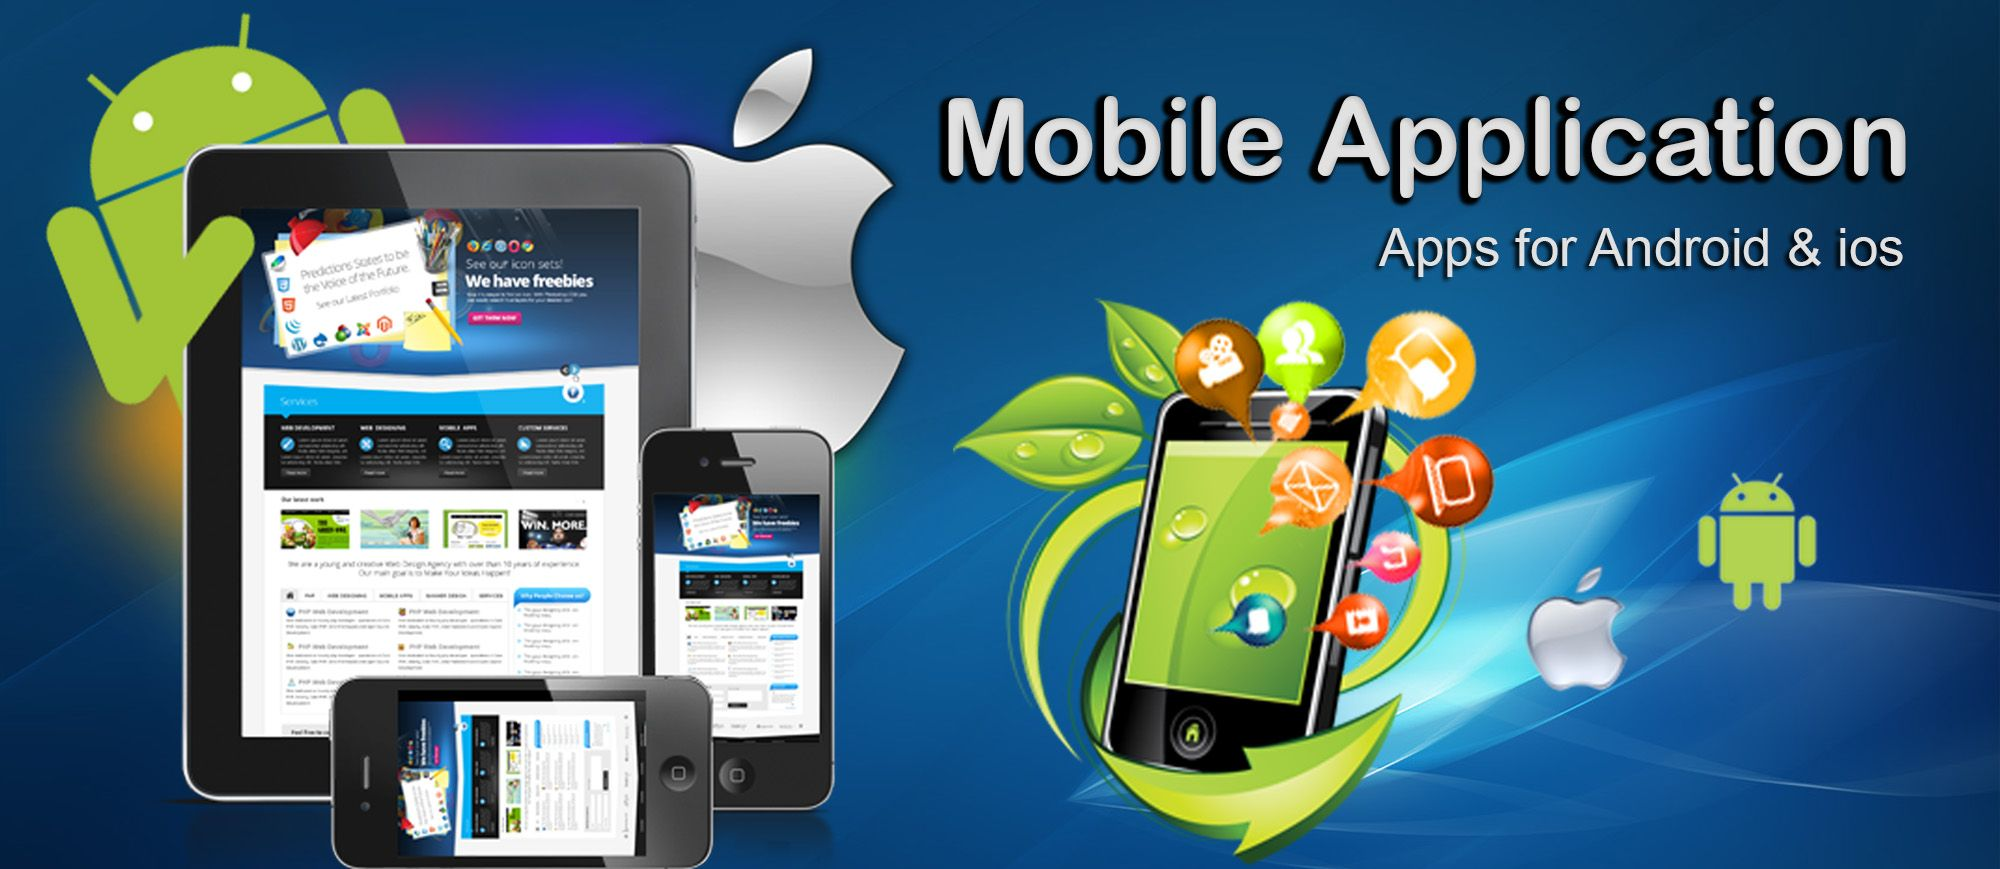 Today S Tech New Know Everything About The Mobile App Application Apps App